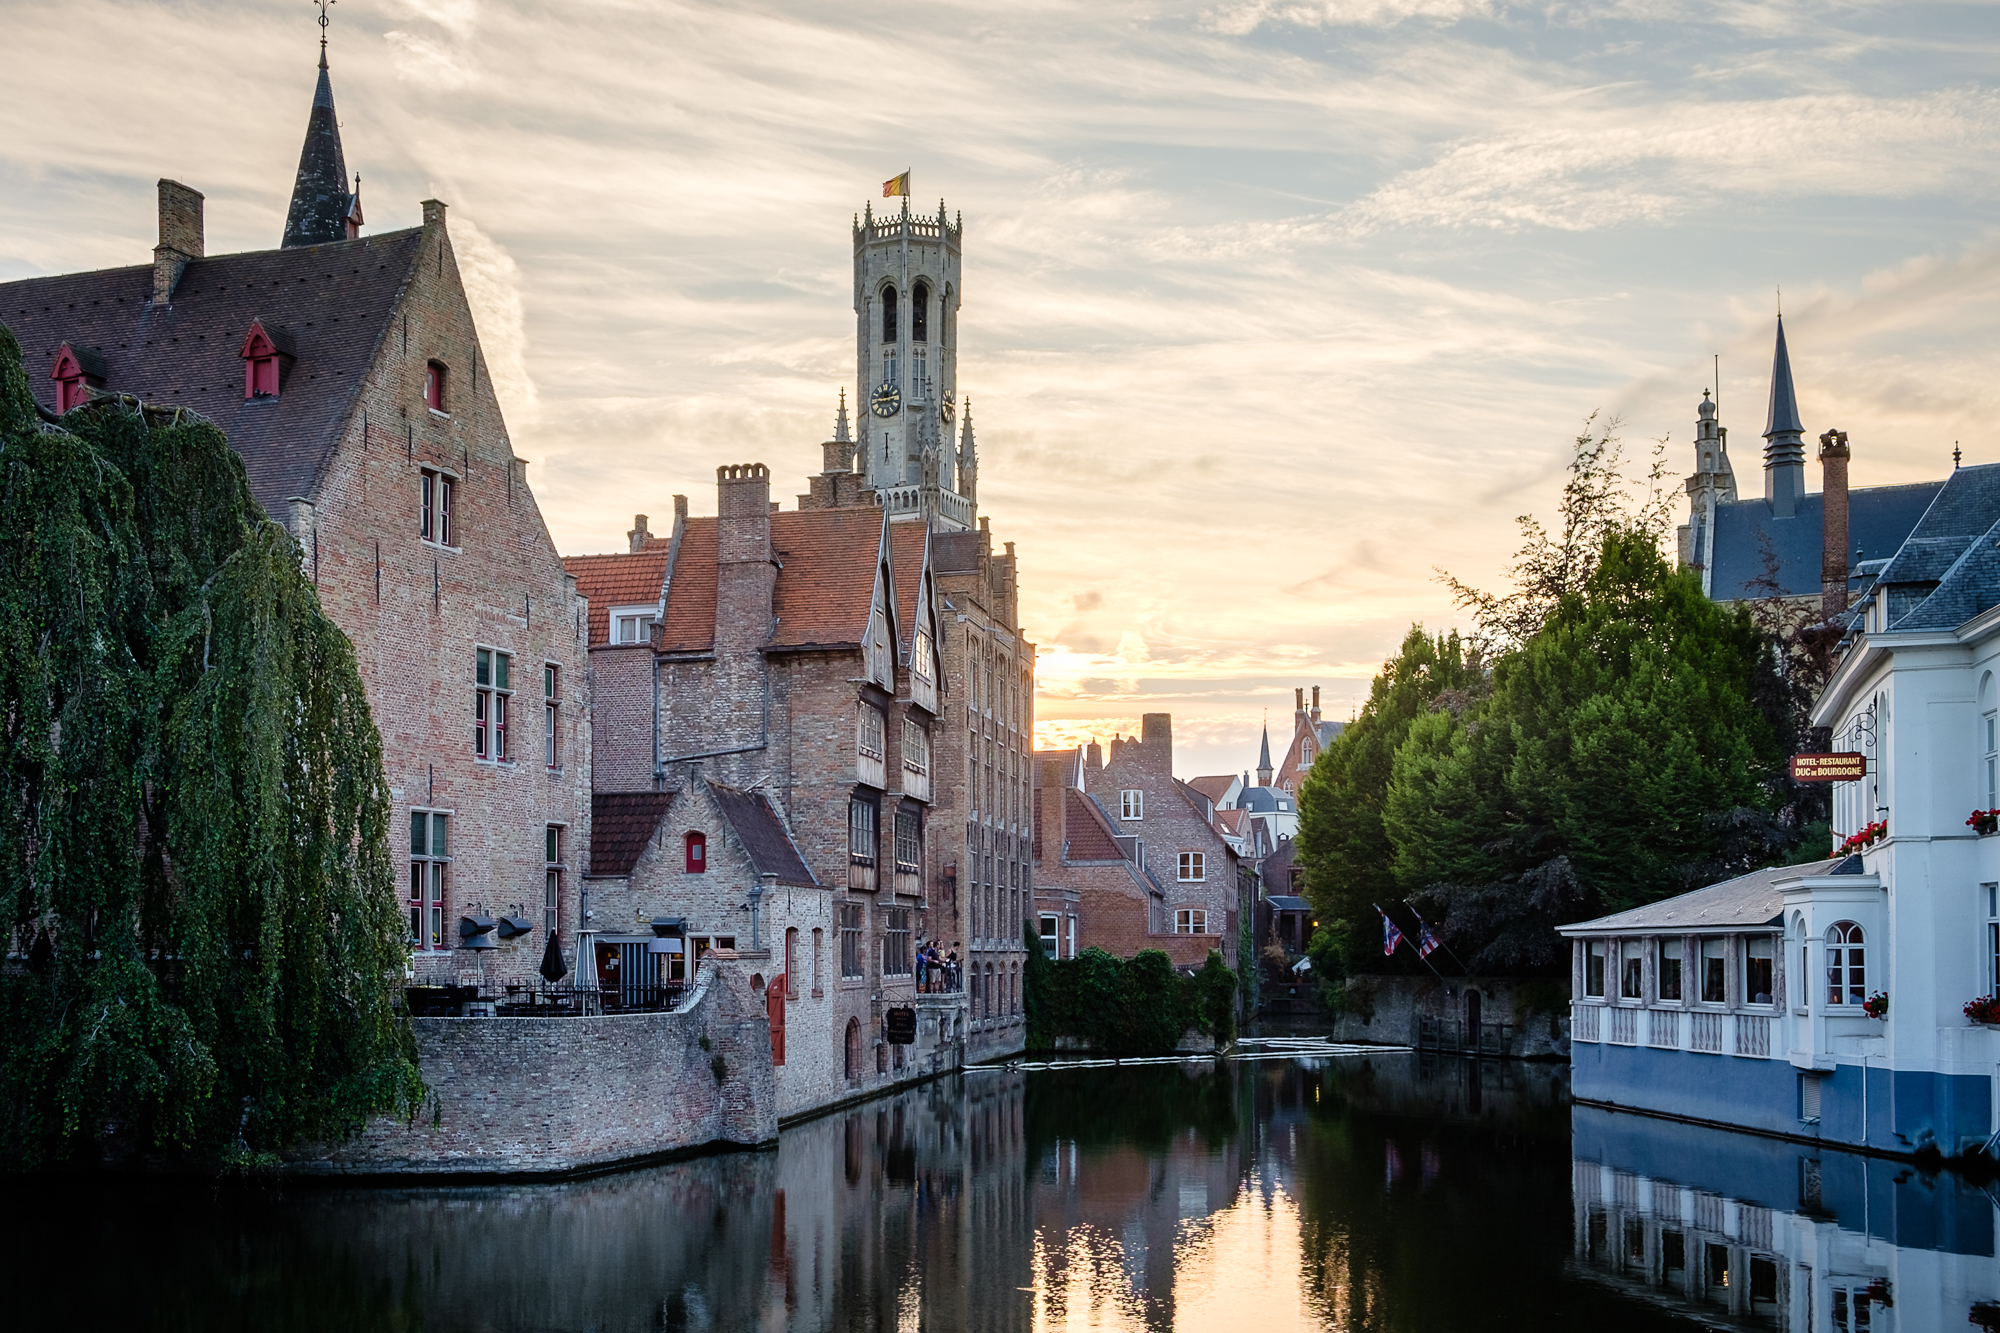 A photo of the Relais Bourgondisch Cruyce and the Belfry Tower in Bruges, Belgium taken by Trevor Sherwin